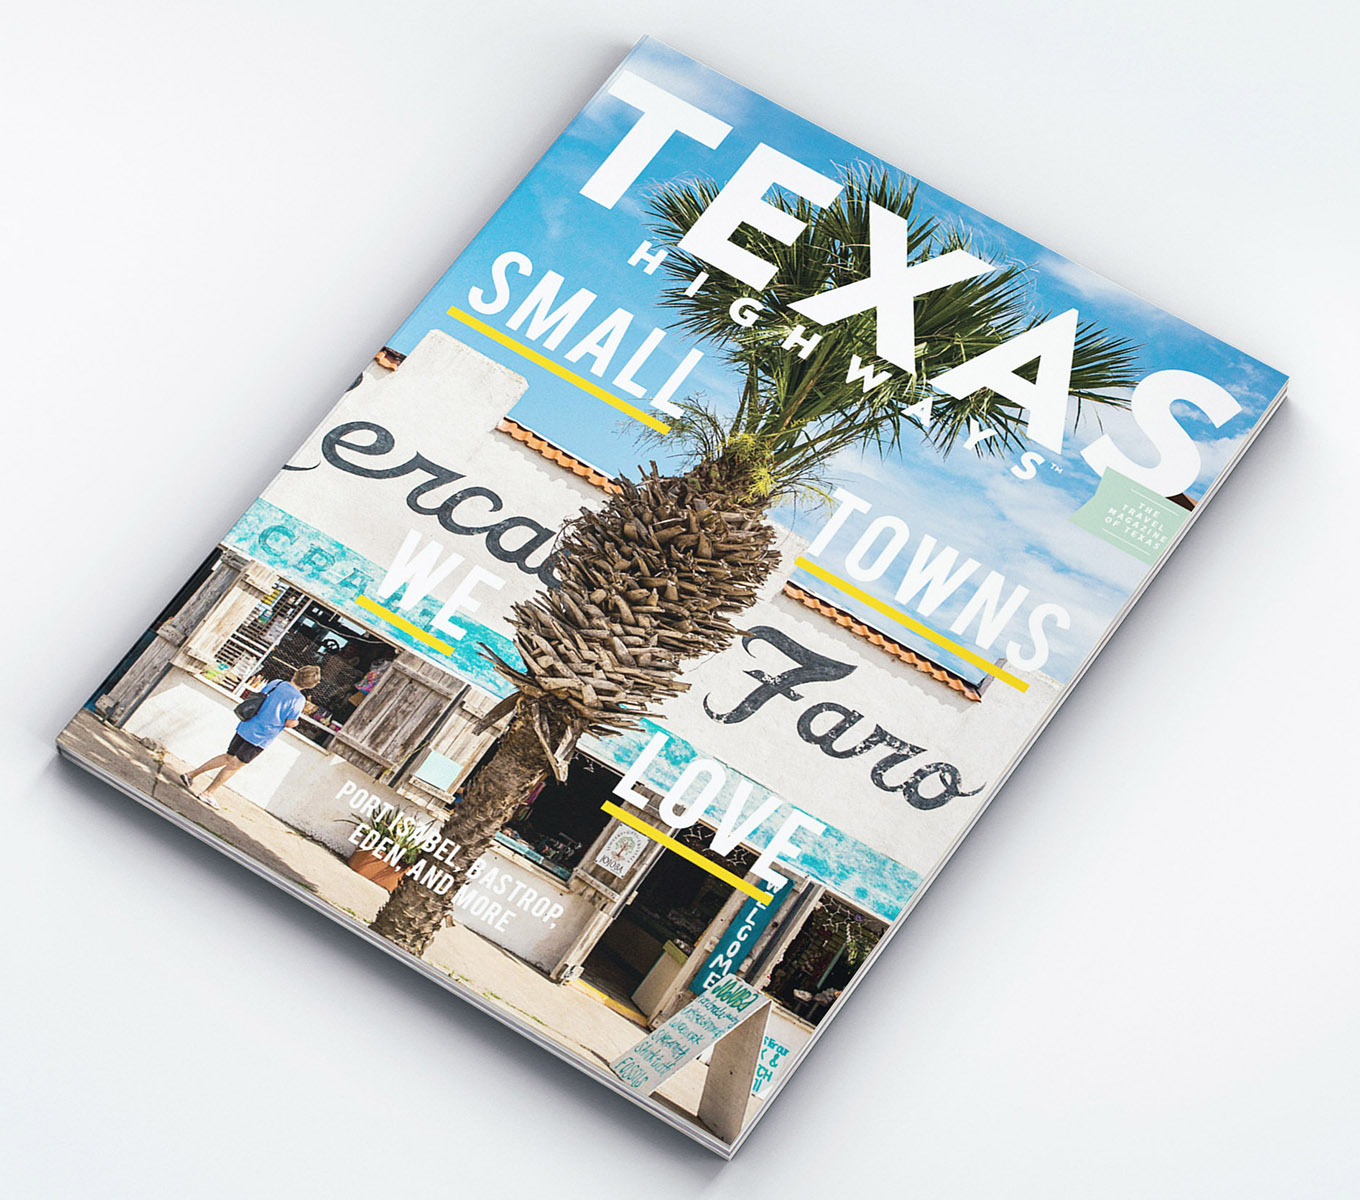 The cover of the August 2021 issue of Texas Highways Magazine